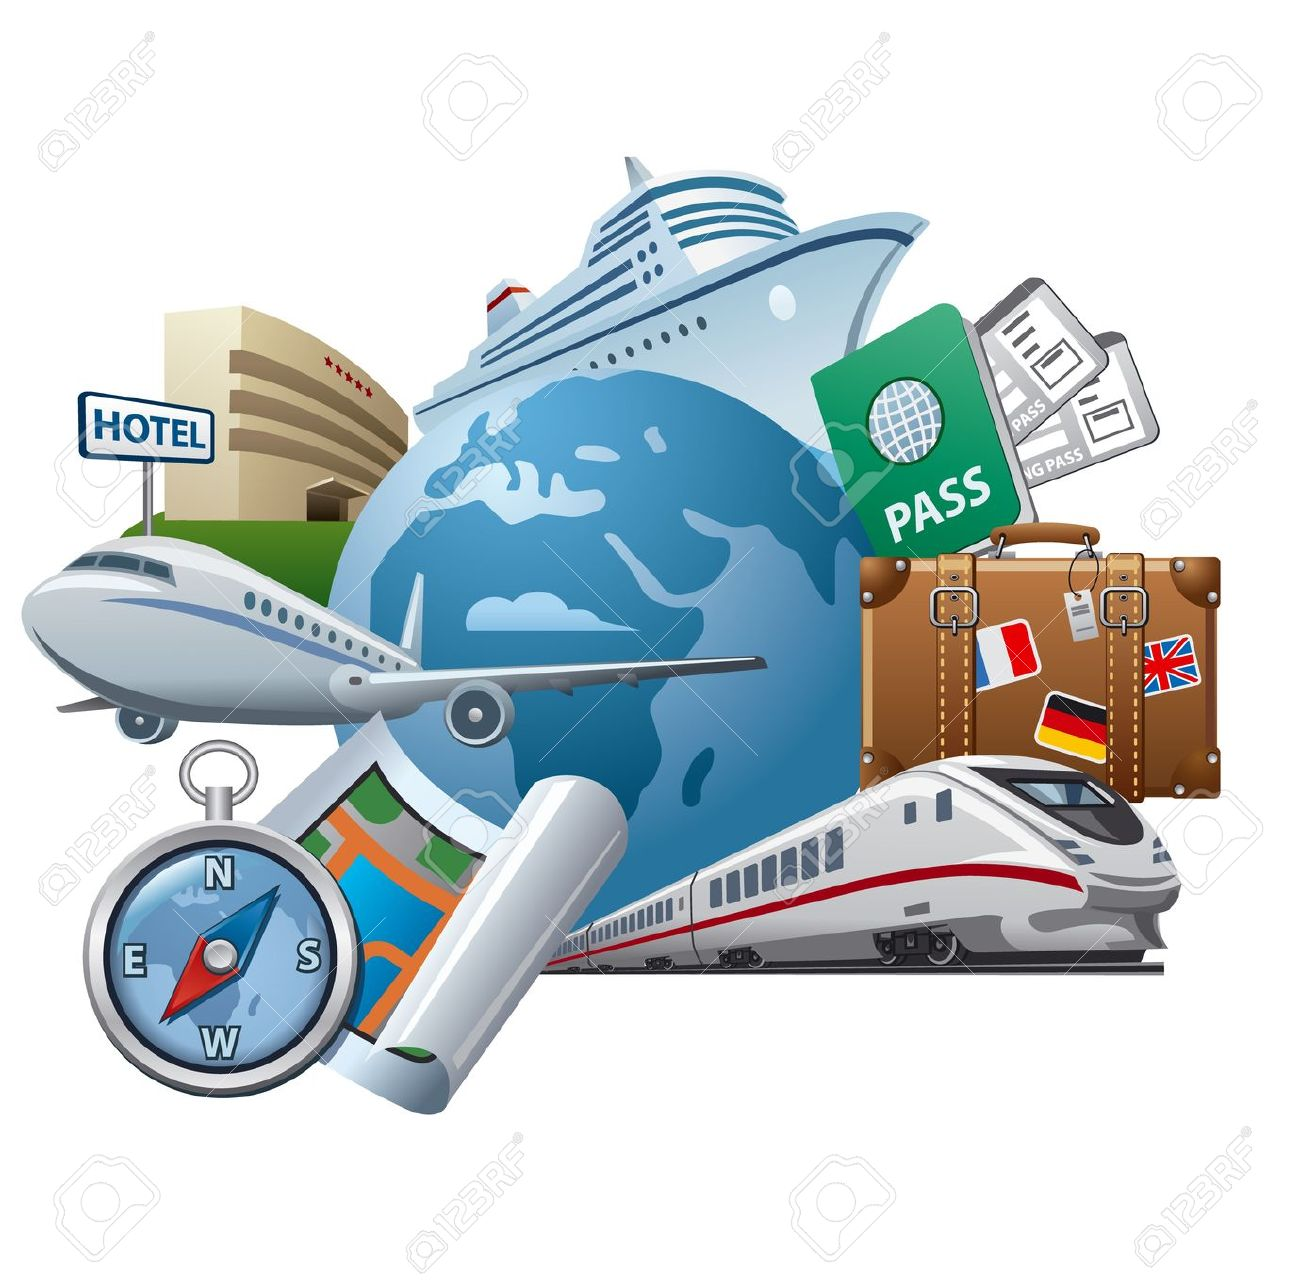 Travel and tourism clipart.